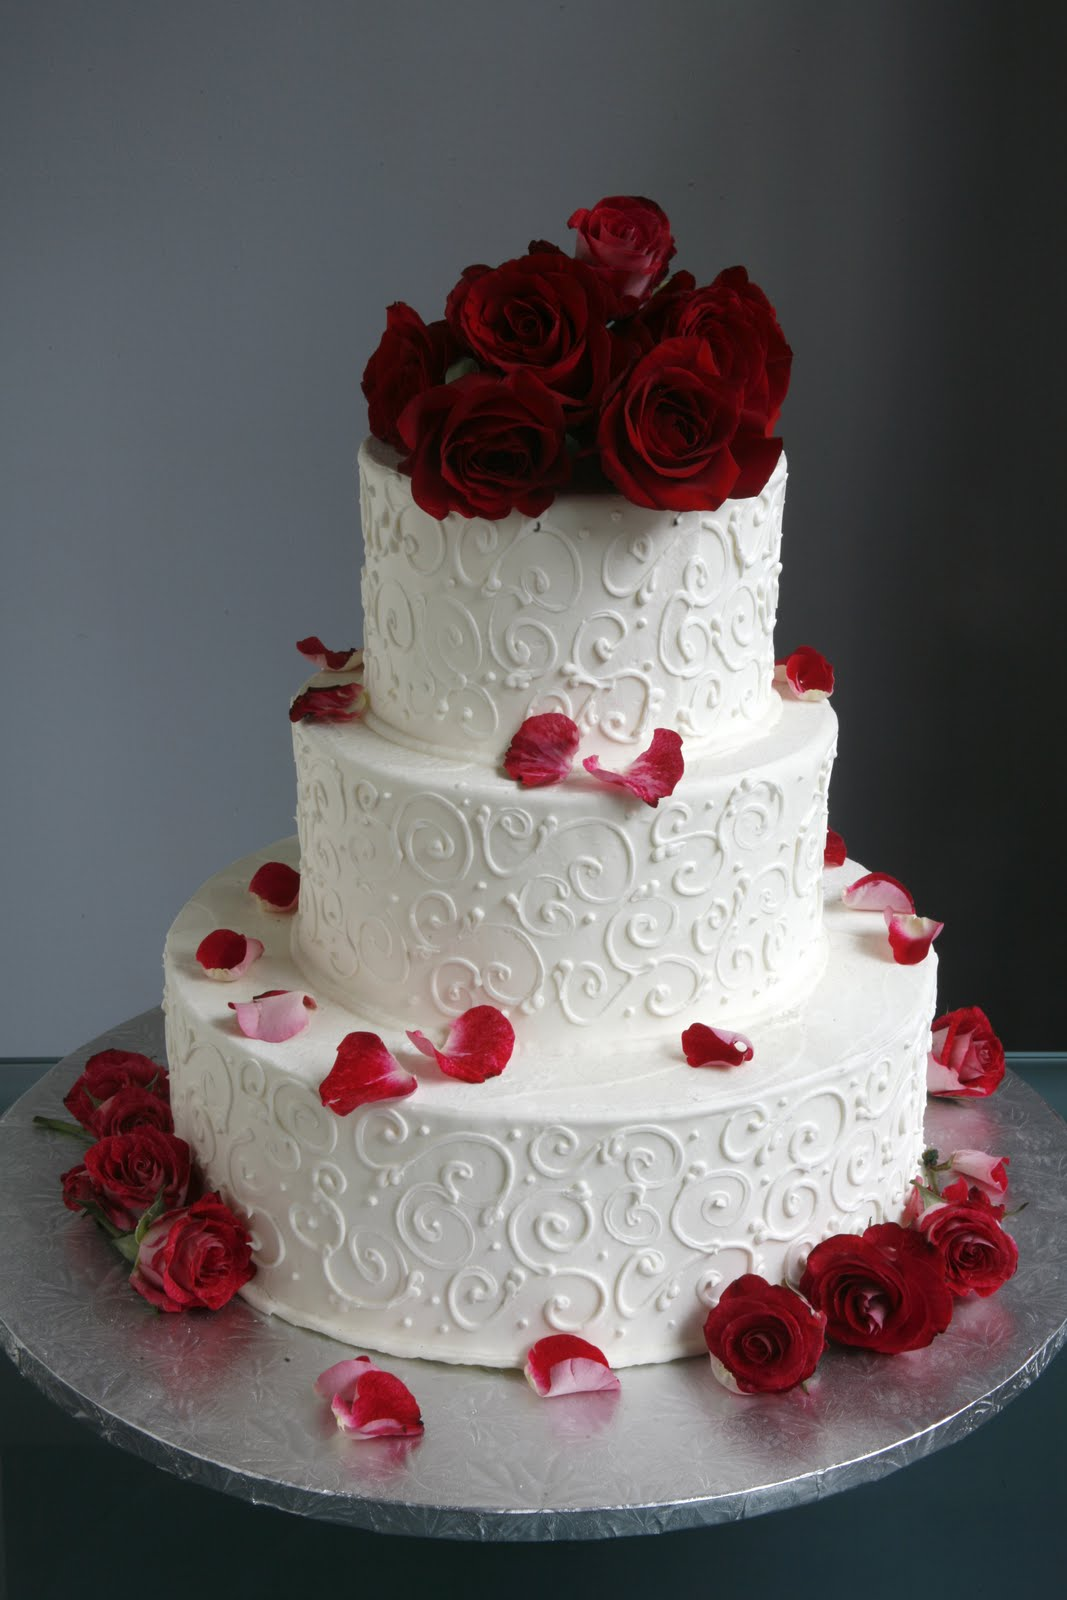 A Simple Cake Wedding Cake With Fresh Flowers From Trader Joes